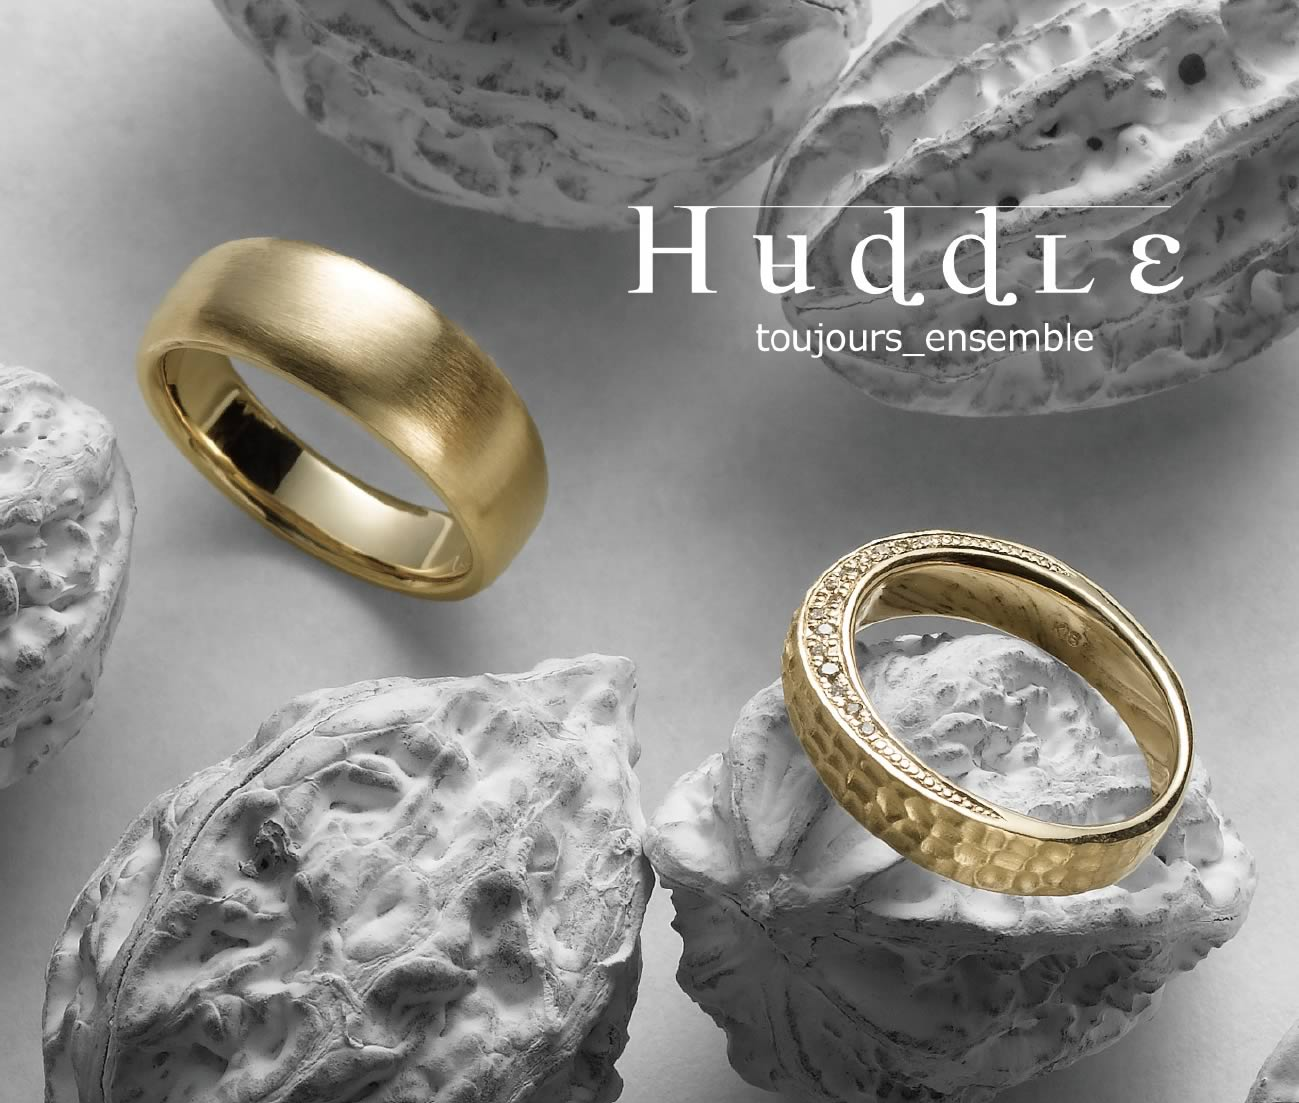 jewelry_top_huddle_03